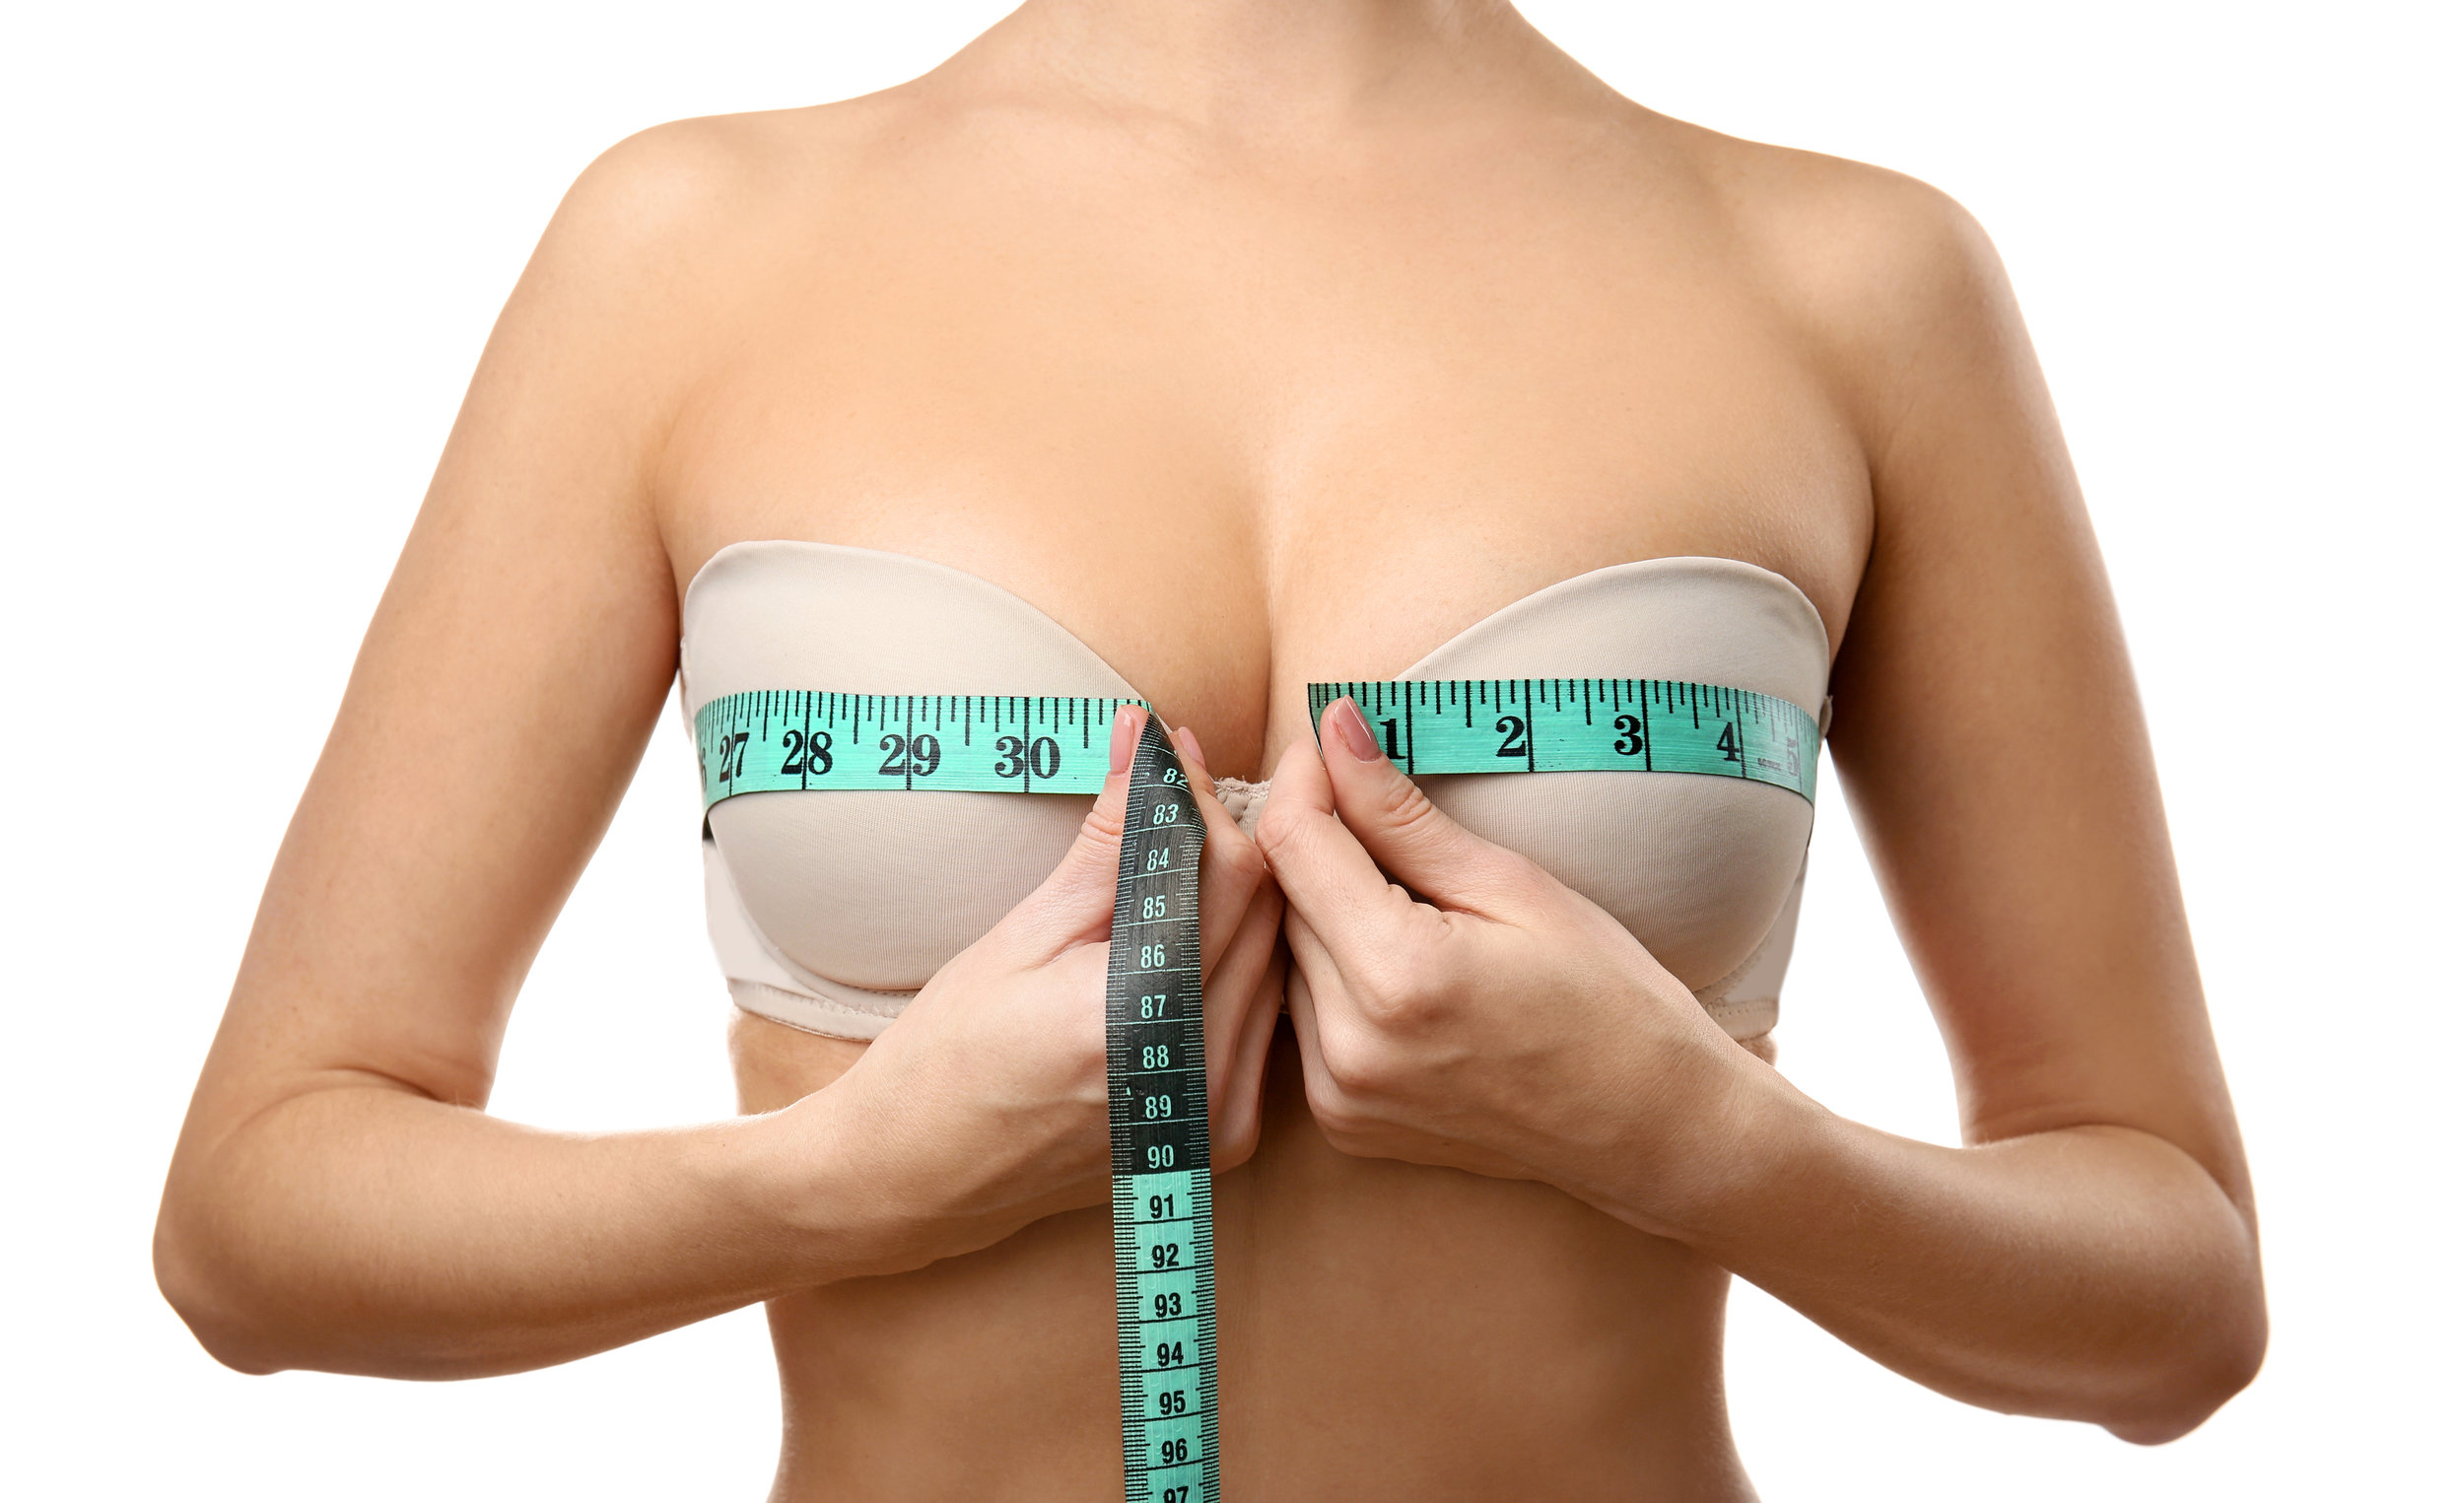 Natural breast-enhancement - With the latest advancement in body contouring and fat transfer, we can use your own bodies natural tissue to increase breast size.They will look, feel and move natural, because they are natural.With minimal downtime you are free to return to work the next day.